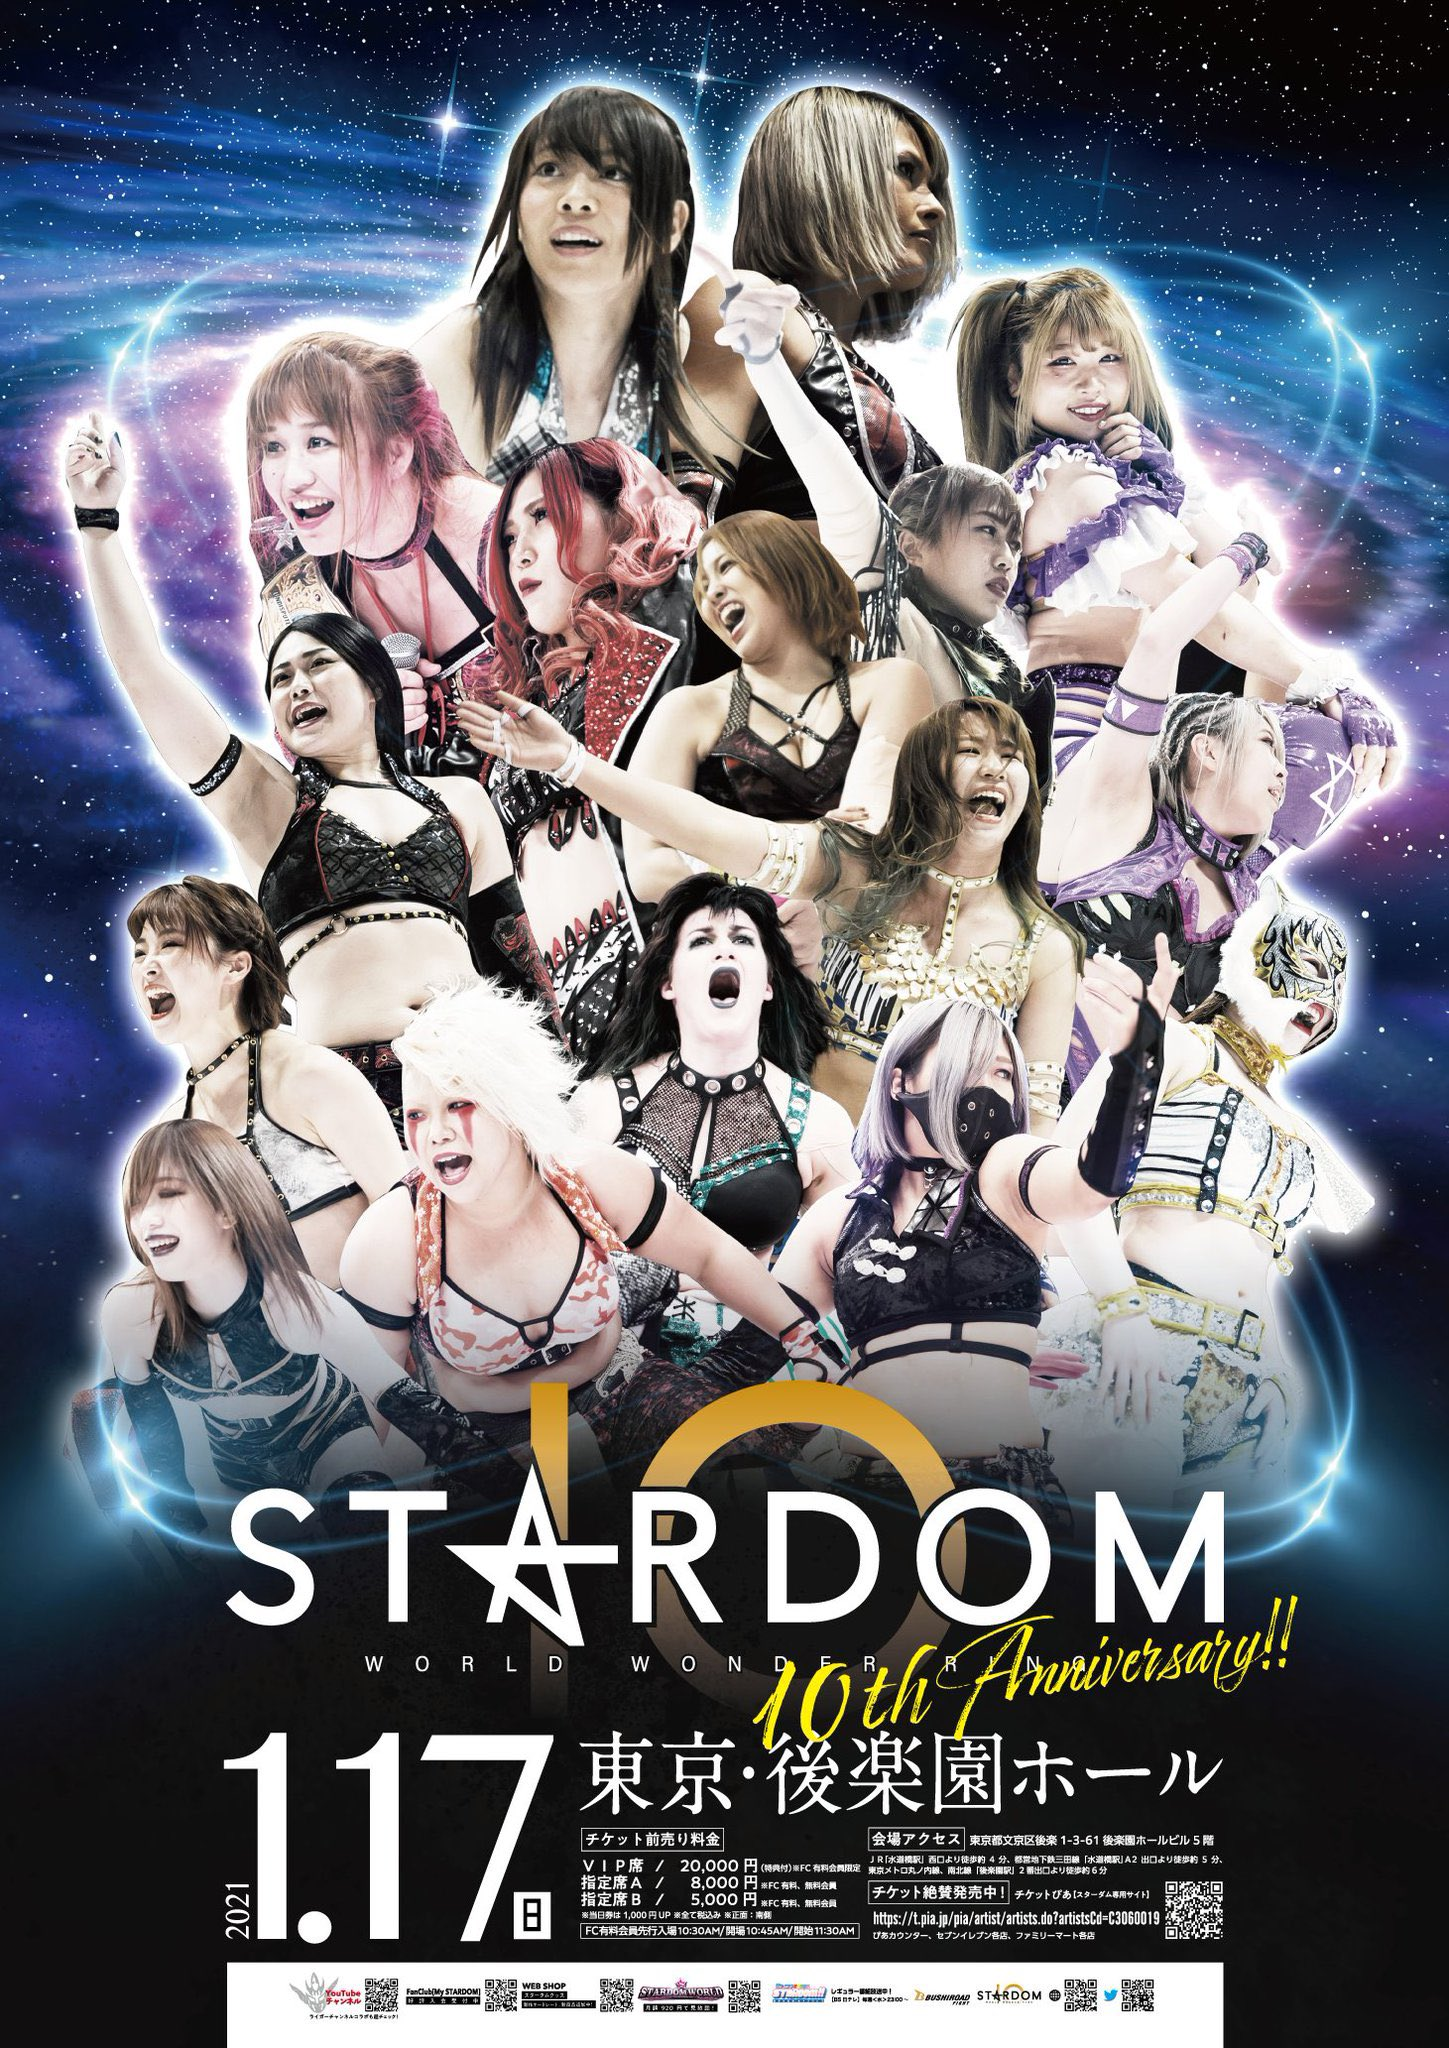 Stardom 10th Anniversary